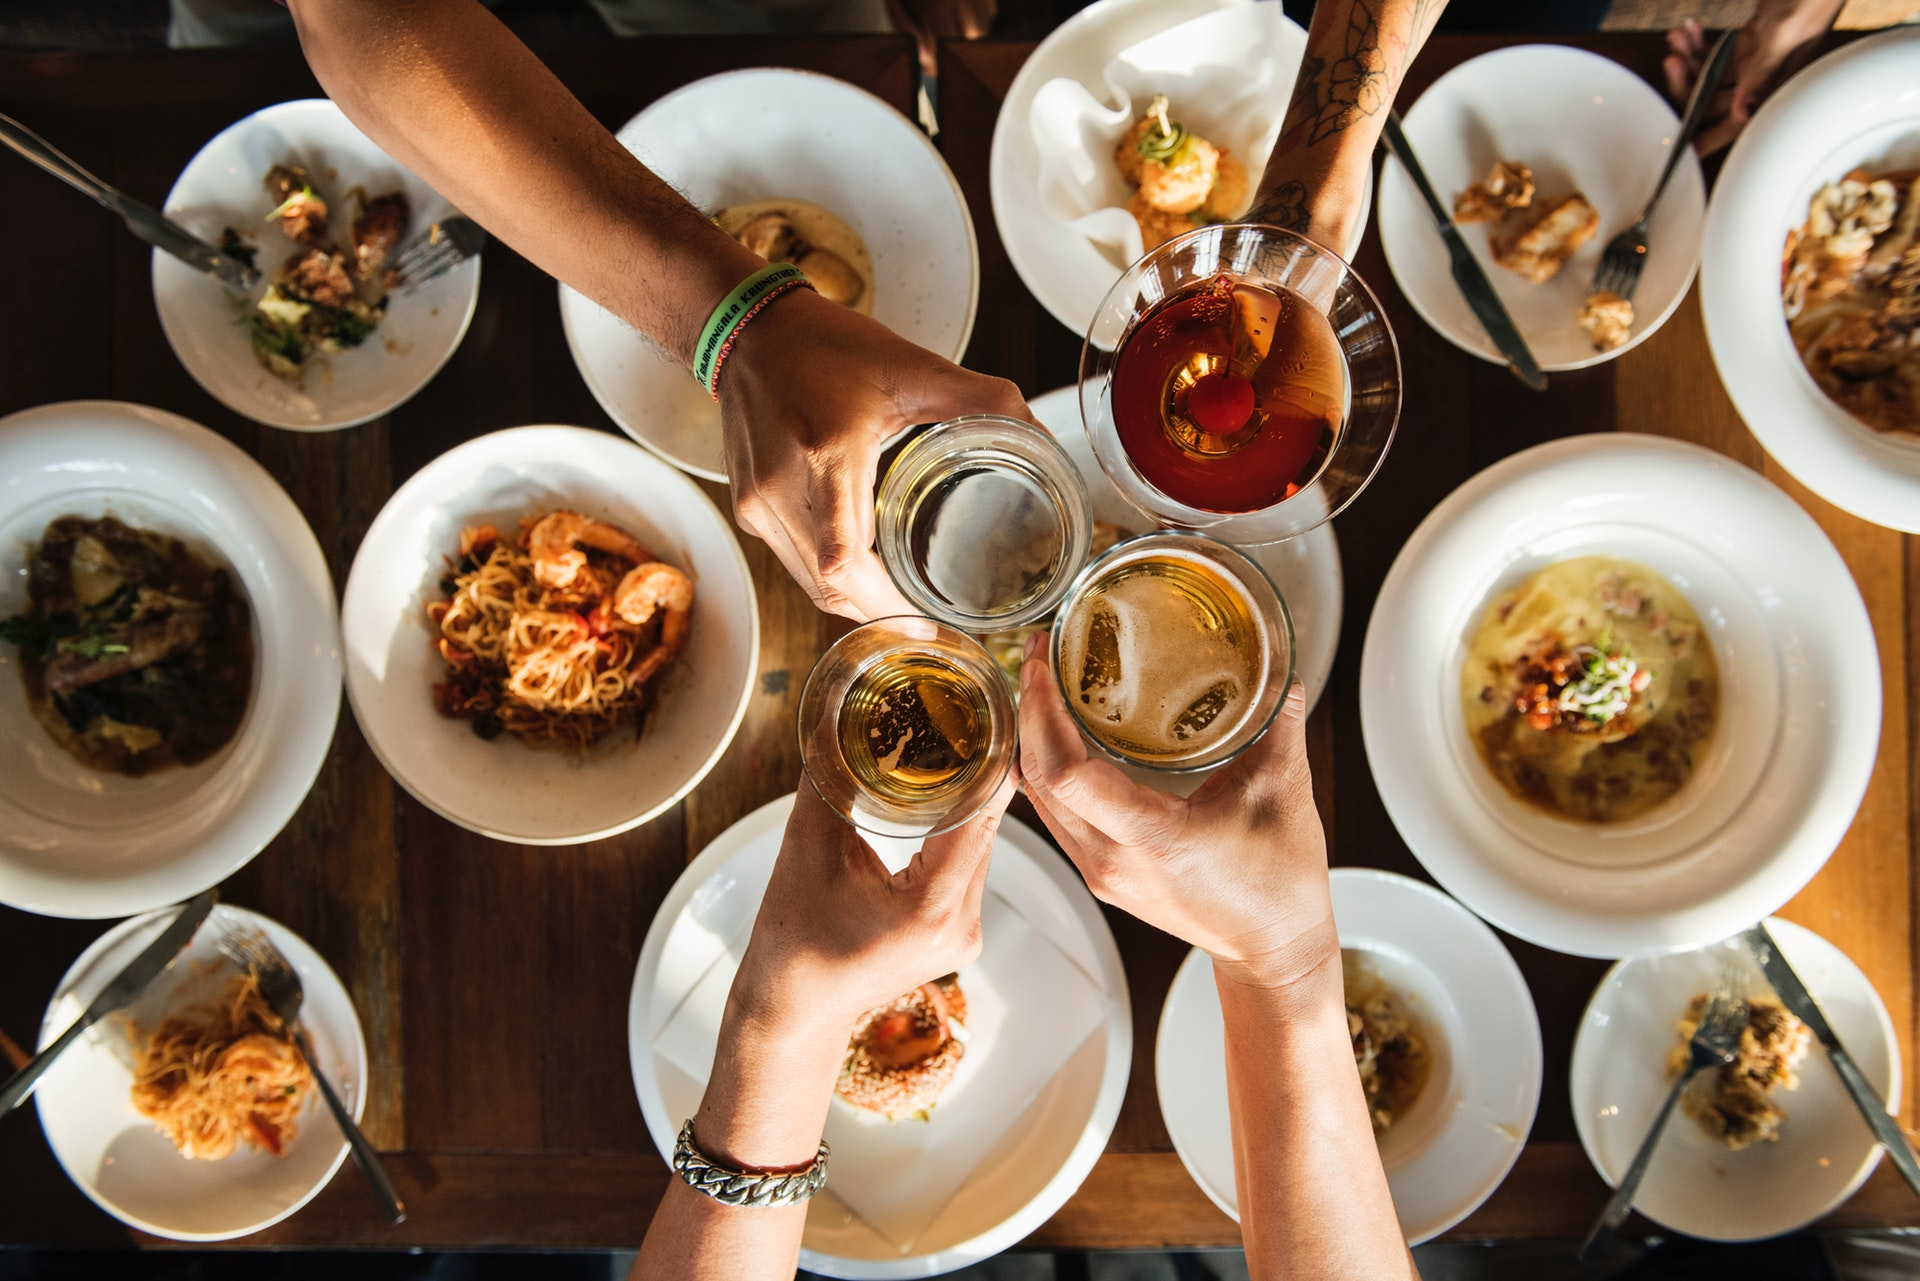 Food Trip Guide: How To Master The Art of Eating When Traveling